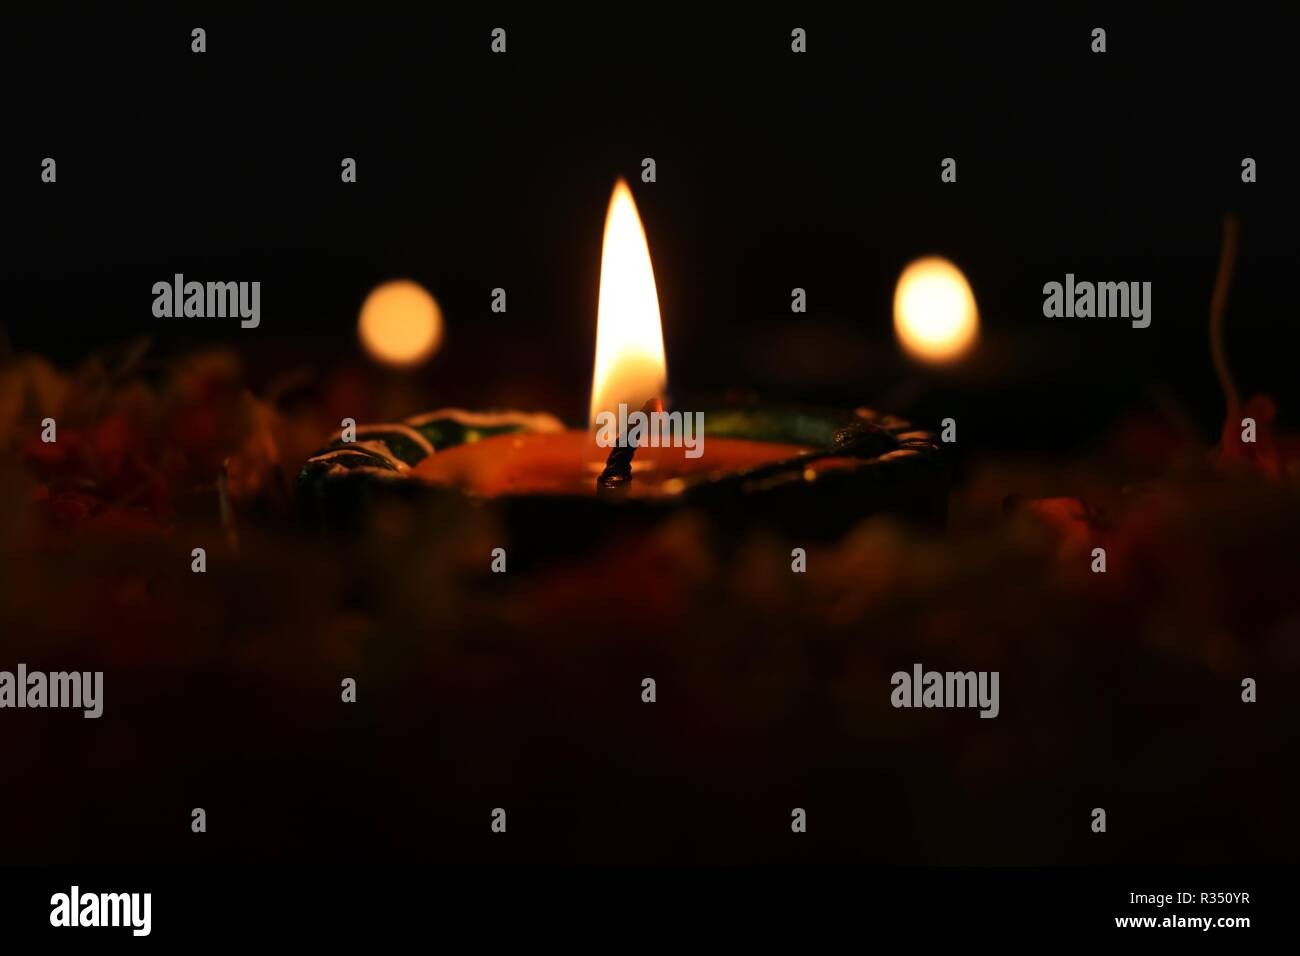 Lit diya placed on flowers for celebrating diwali and dhanteras Stock Photo